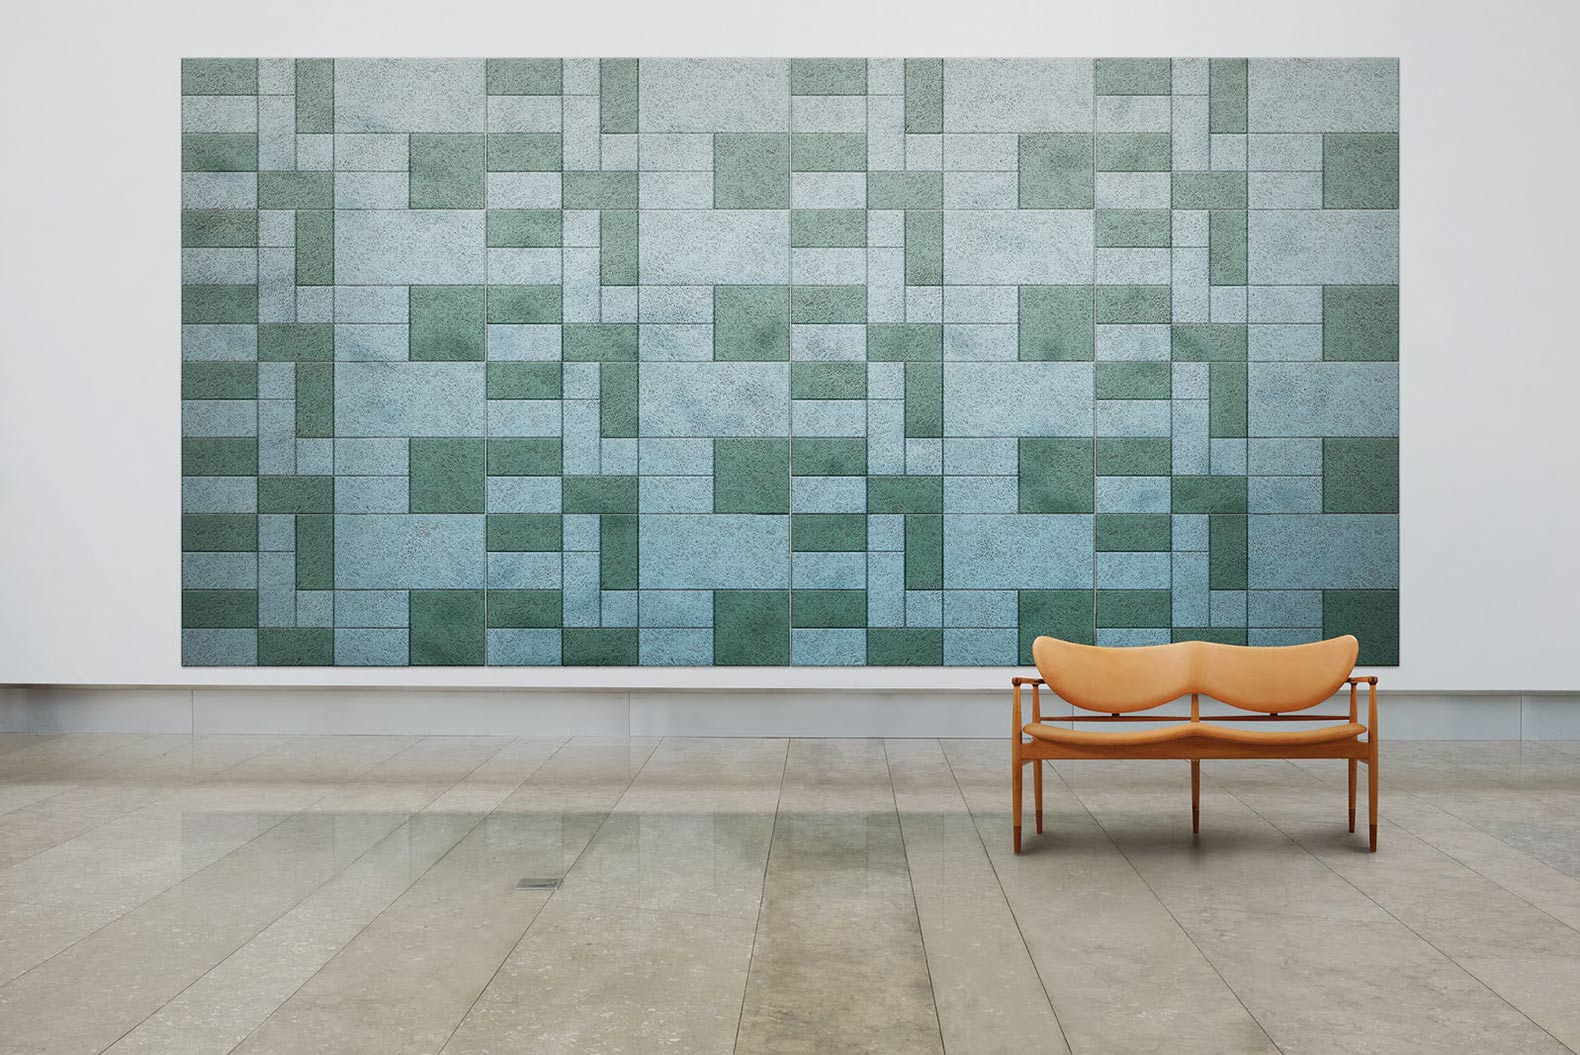 Wall Soundproofing Material : Stunning sound absorbing wall panels arranged form us with